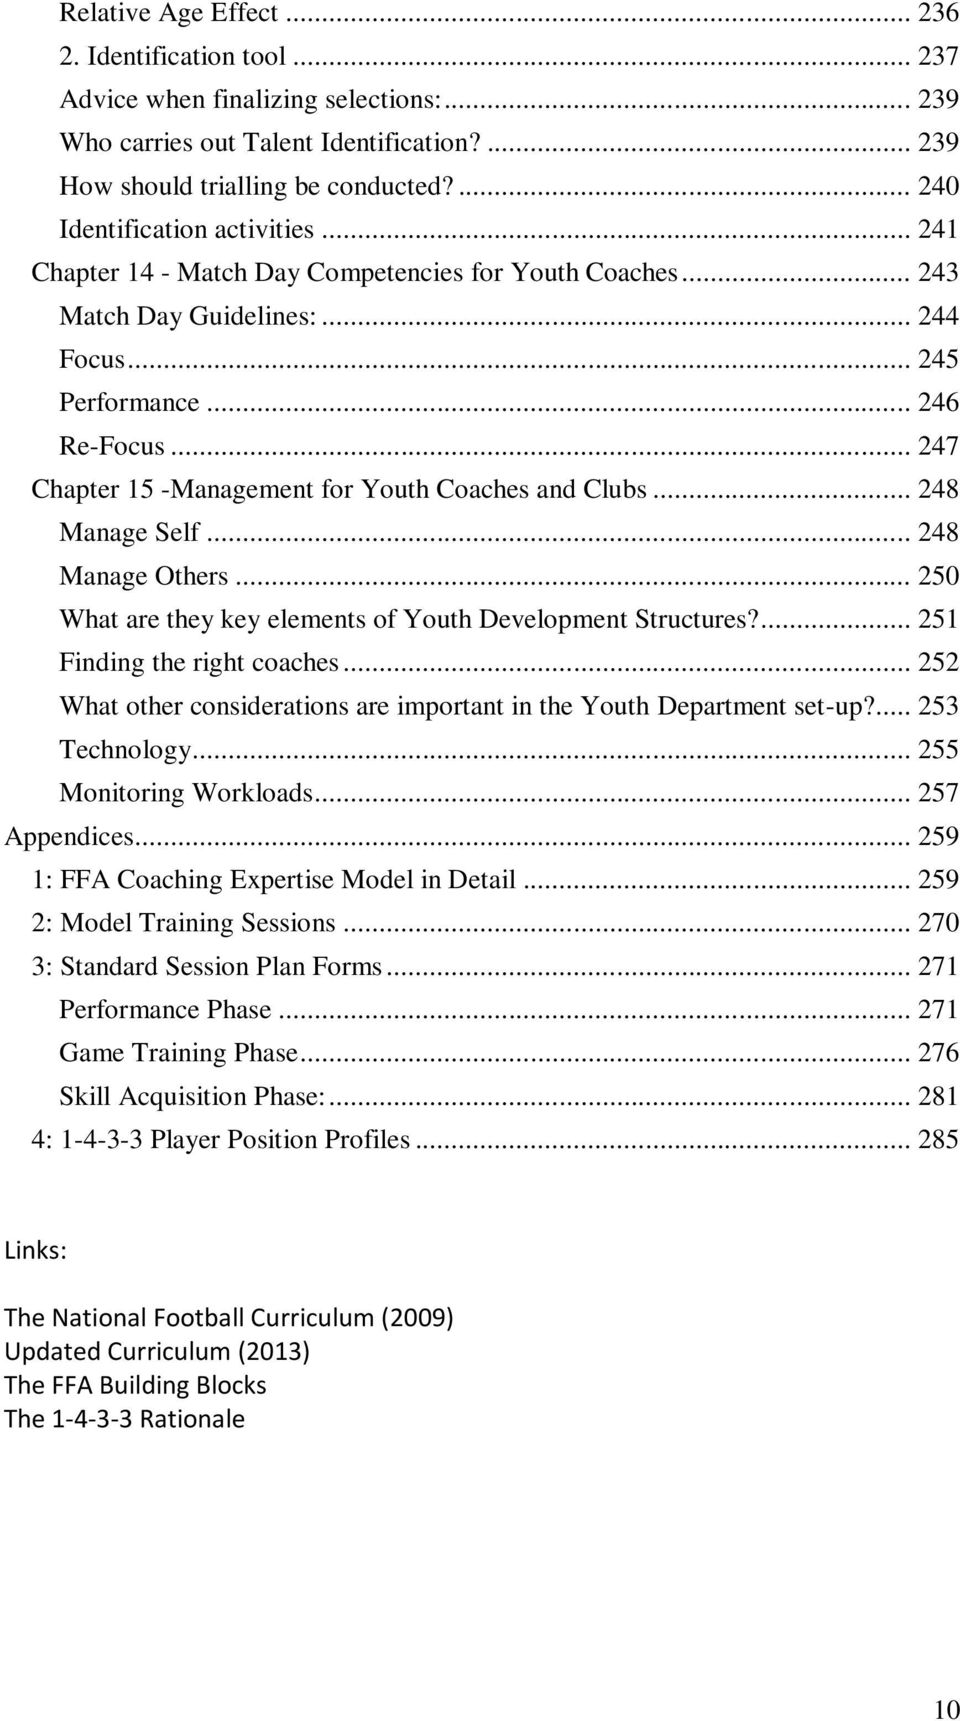 .. 247 Chapter 15 -Management for Youth Coaches and Clubs... 248 Manage Self... 248 Manage Others... 250 What are they key elements of Youth Development Structures?... 251 Finding the right coaches.